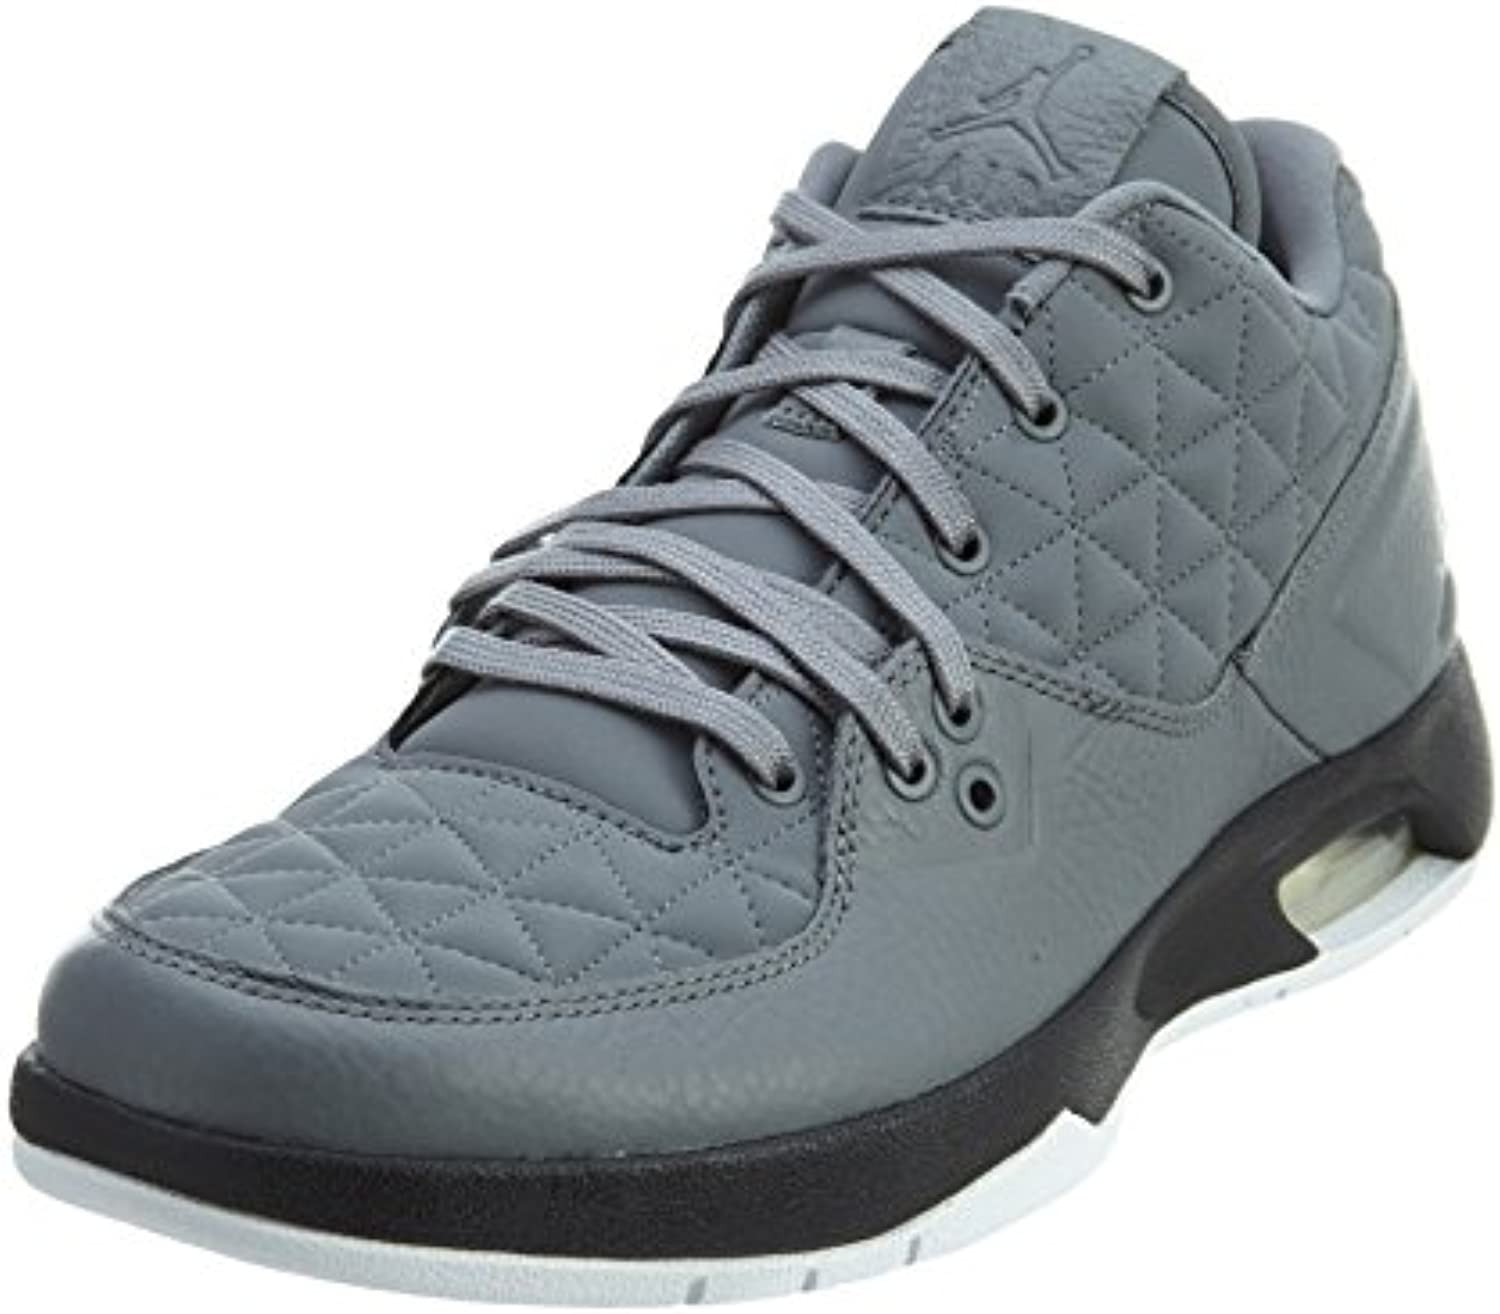 nike   cuir embrayage cool Gris  / cuir  noir taille 12 8bfdd9